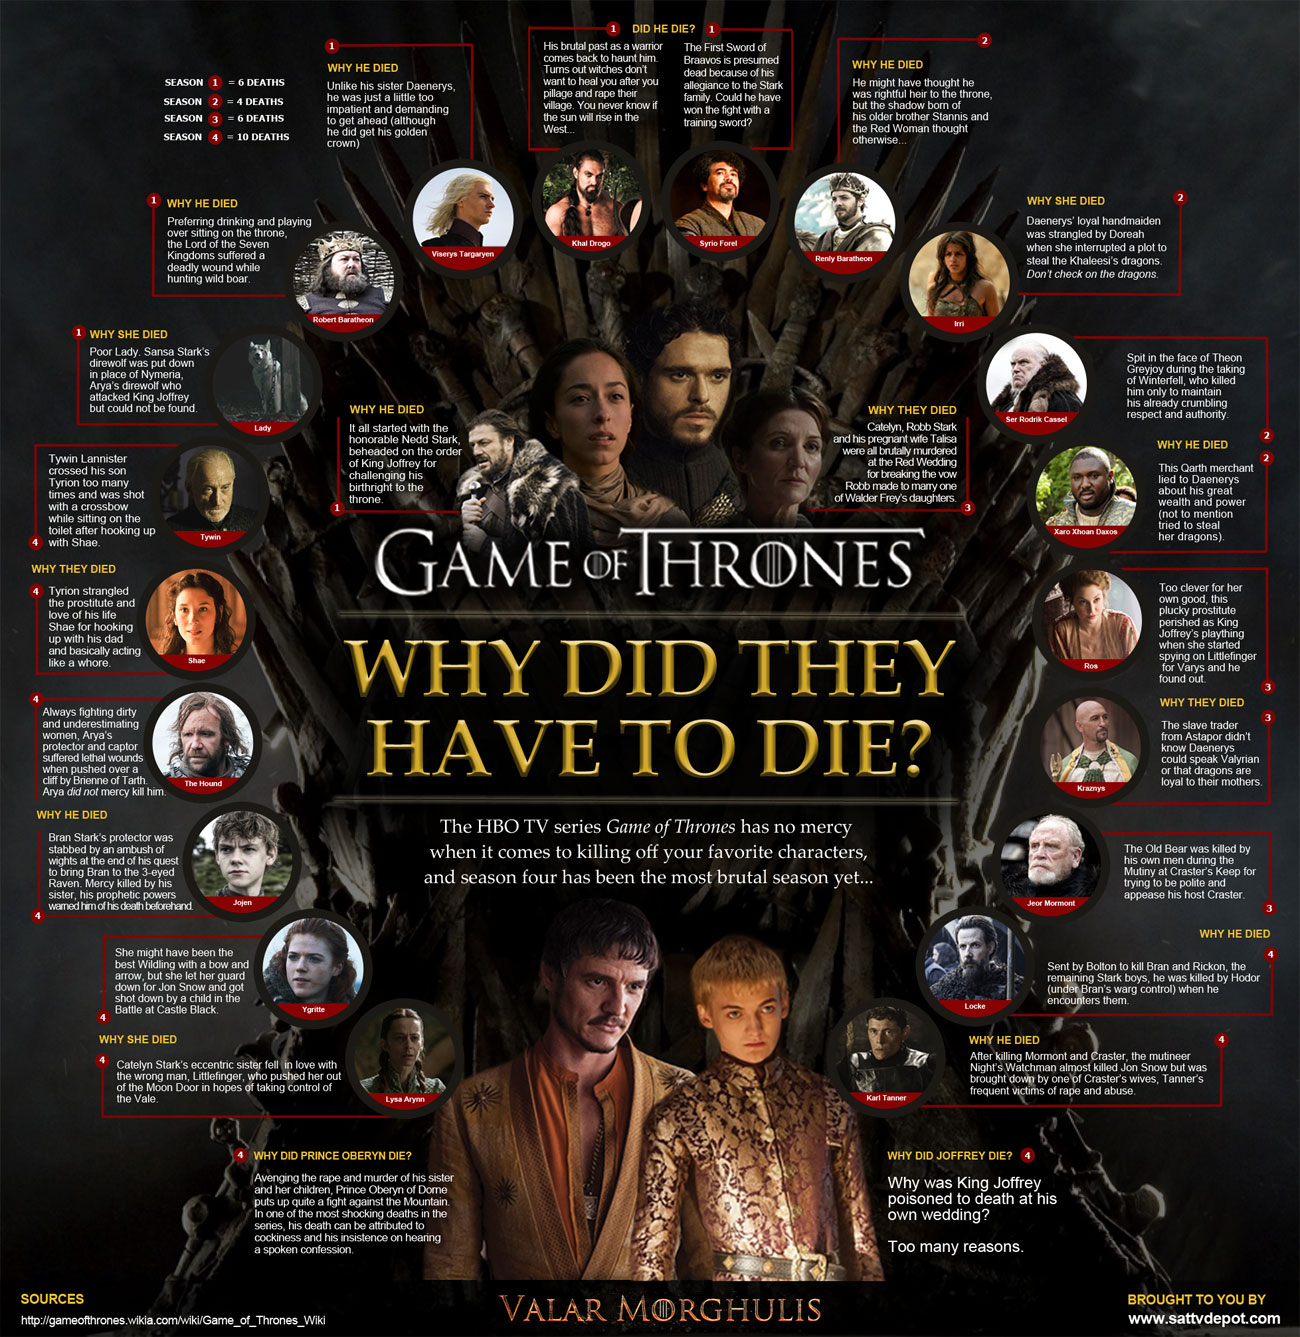 Game of Thrones - Why Did They Have to Die? infographic